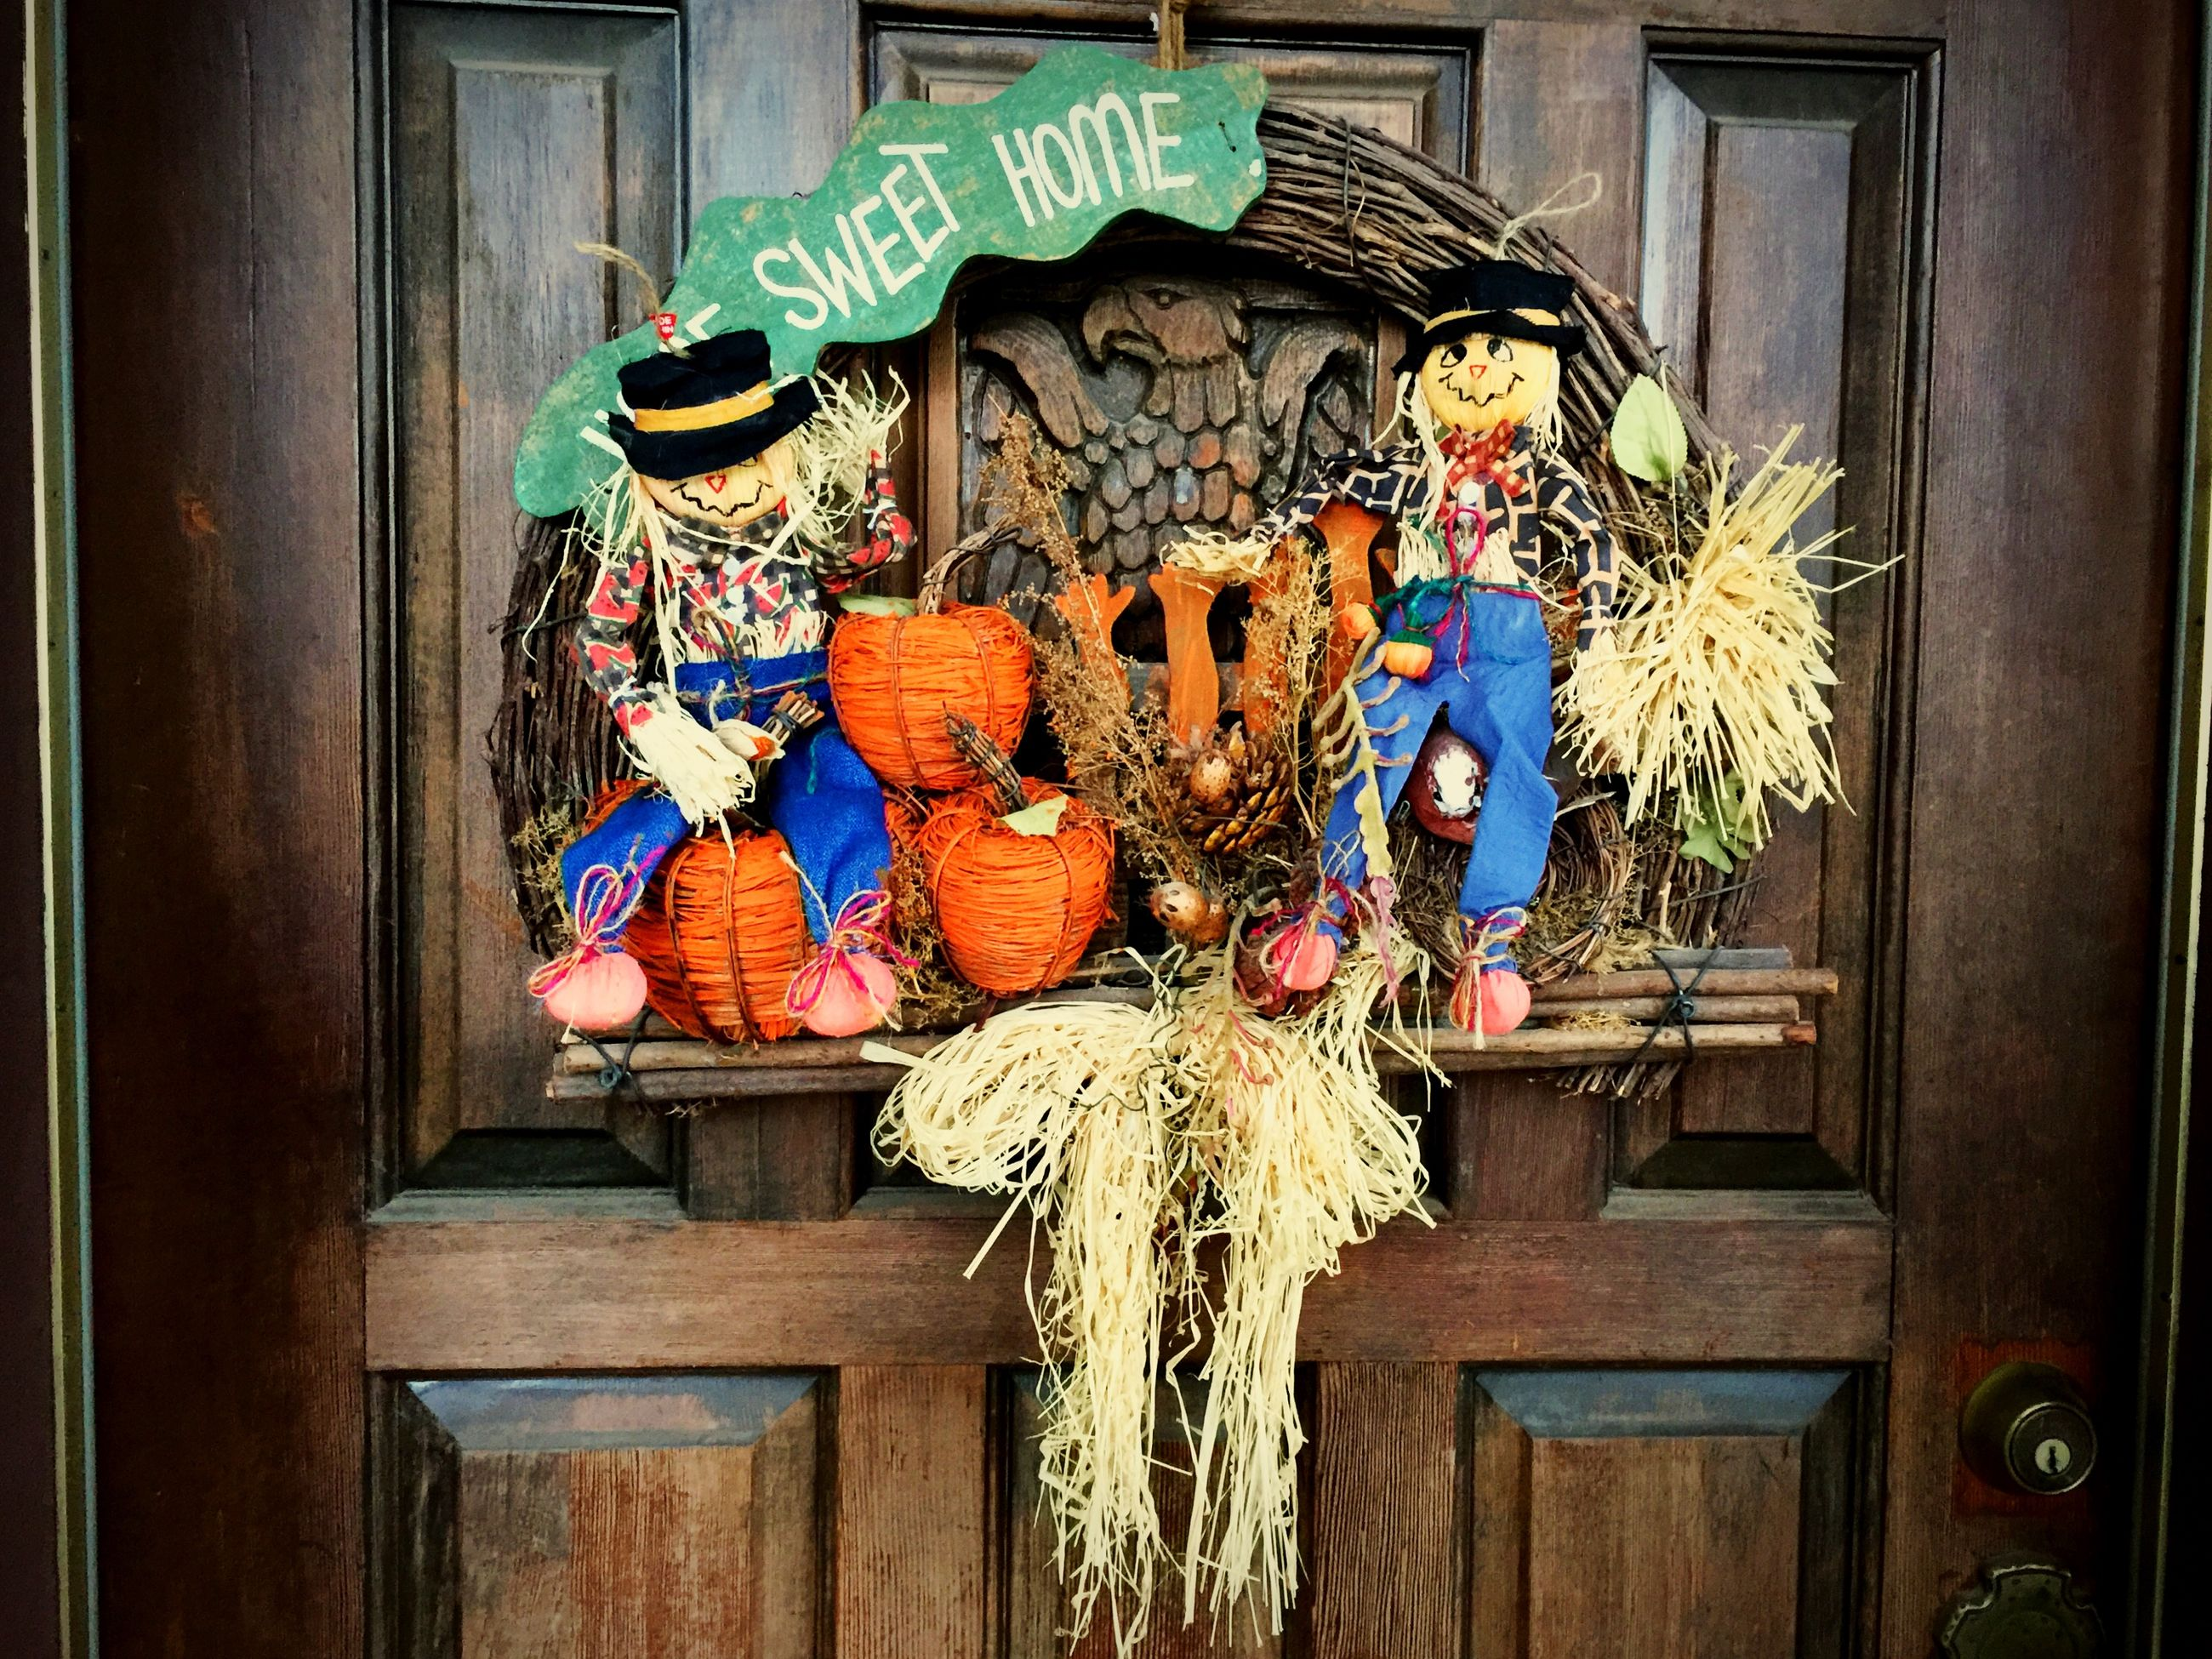 flower, decoration, hanging, art and craft, wood - material, art, creativity, built structure, building exterior, architecture, window, house, door, wall - building feature, low angle view, multi colored, ornate, human representation, religion